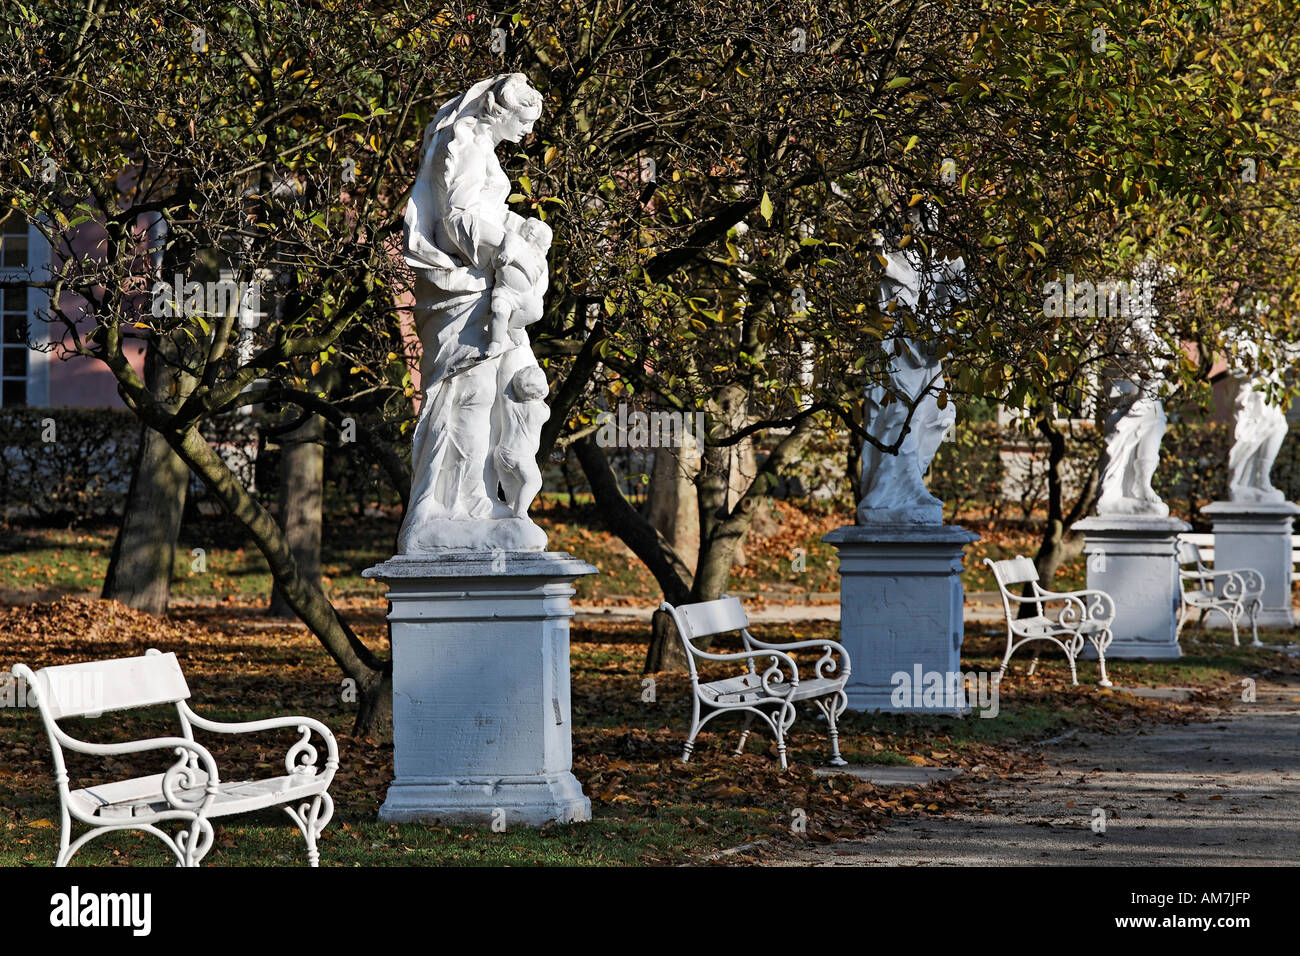 Palace grounds of the prince elector, Trier, Rhineland-Palatinate, Germany Stock Photo